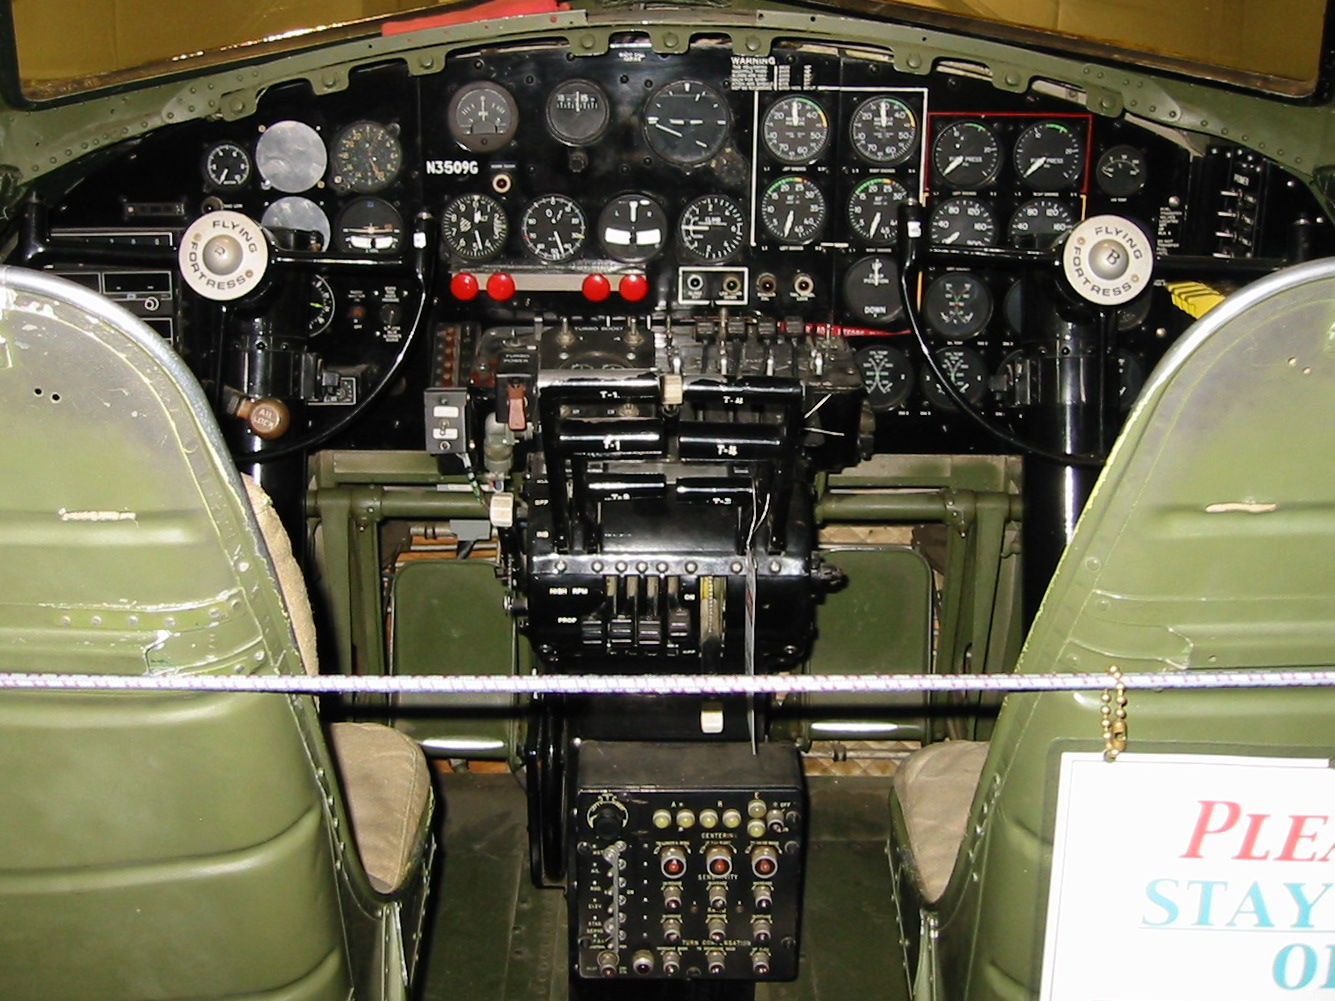 B 17 Wiring Diagram Owner Manual And Books Rj45 Boeing Flying Fortress Instrument Panel Cockpit From The Rh Captmoonbeam Com Ethernet Cable Connector